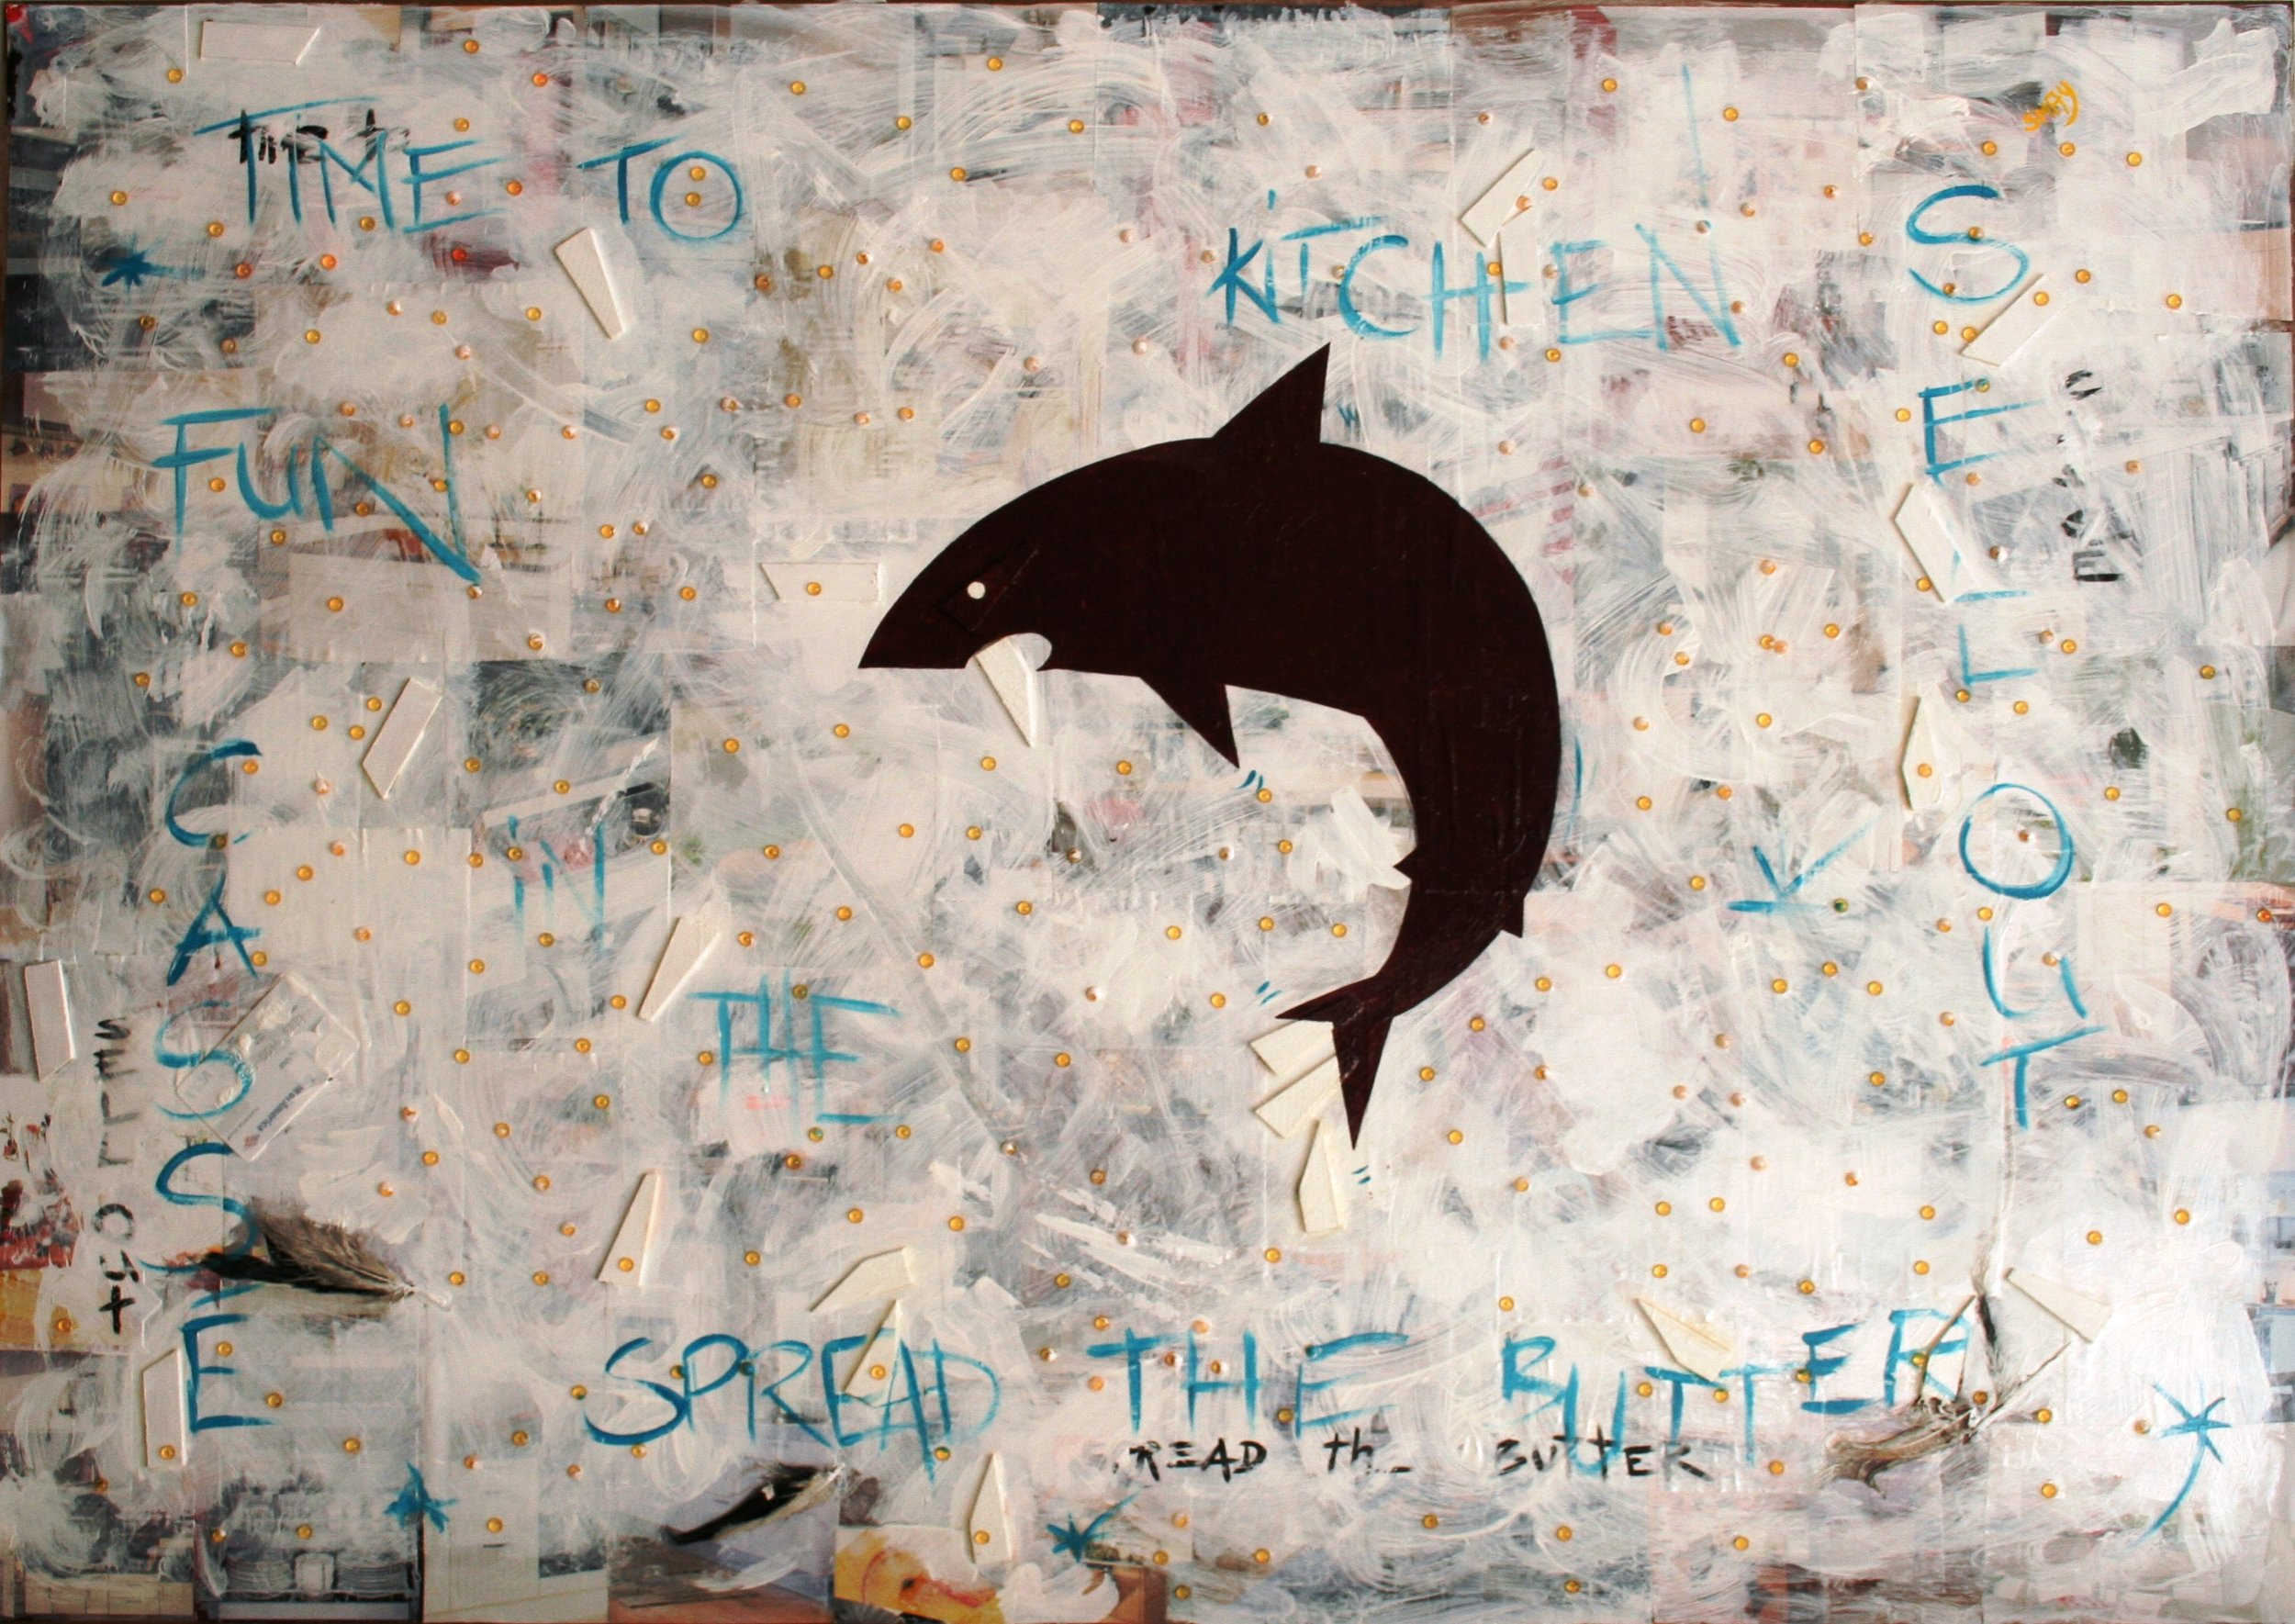 Time to Spread the Butter  2008 Mixed media on wood 123 x 85cm